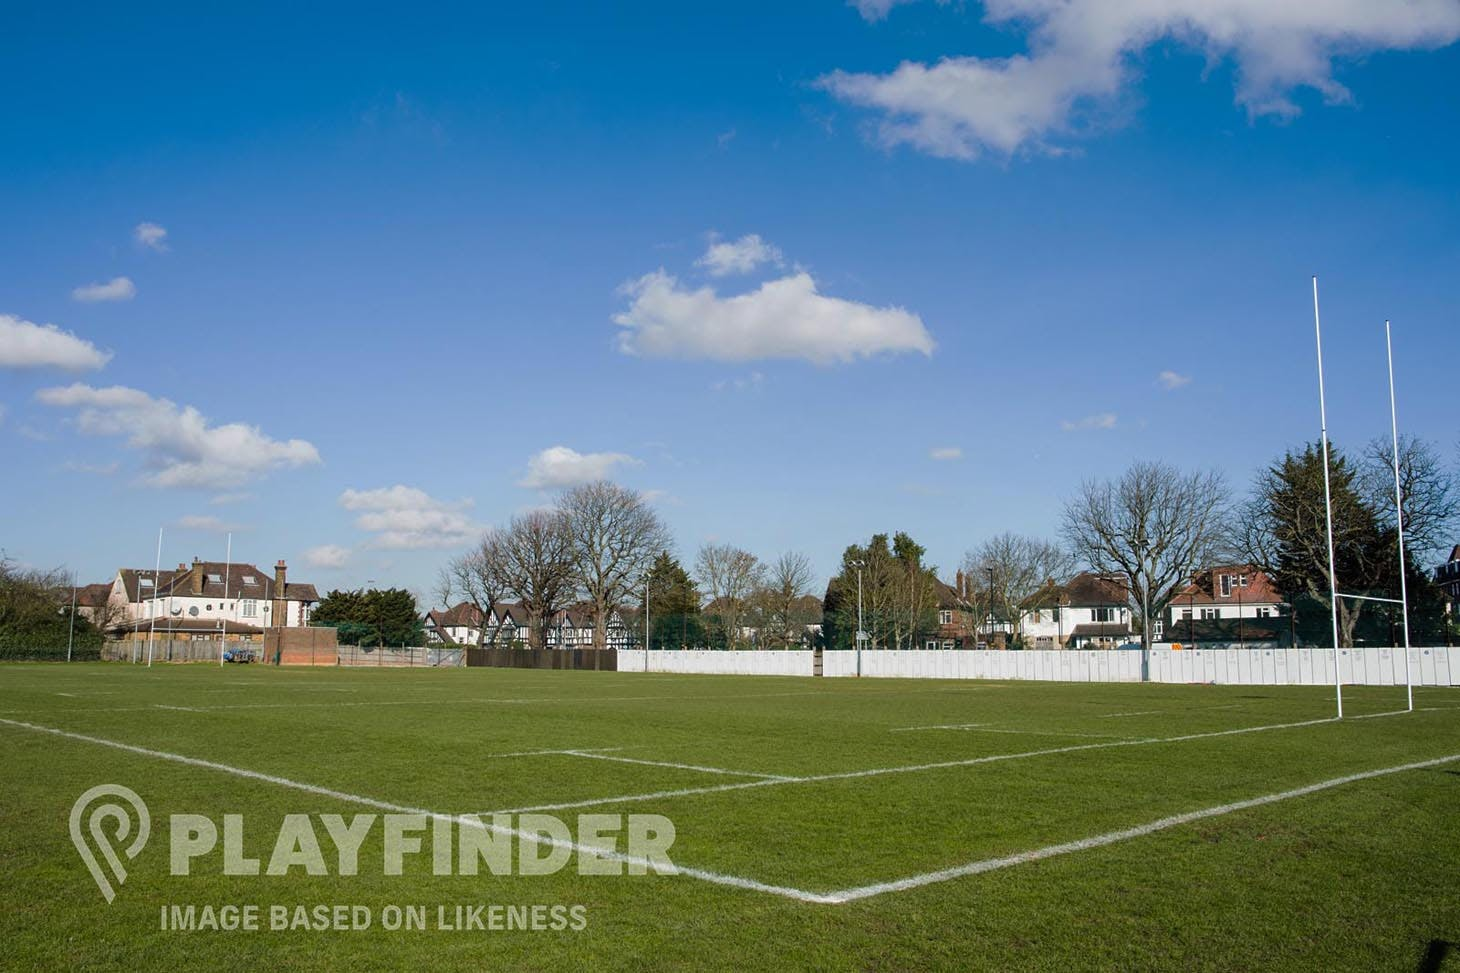 New River Sport & Fitness Union | Grass rugby pitch